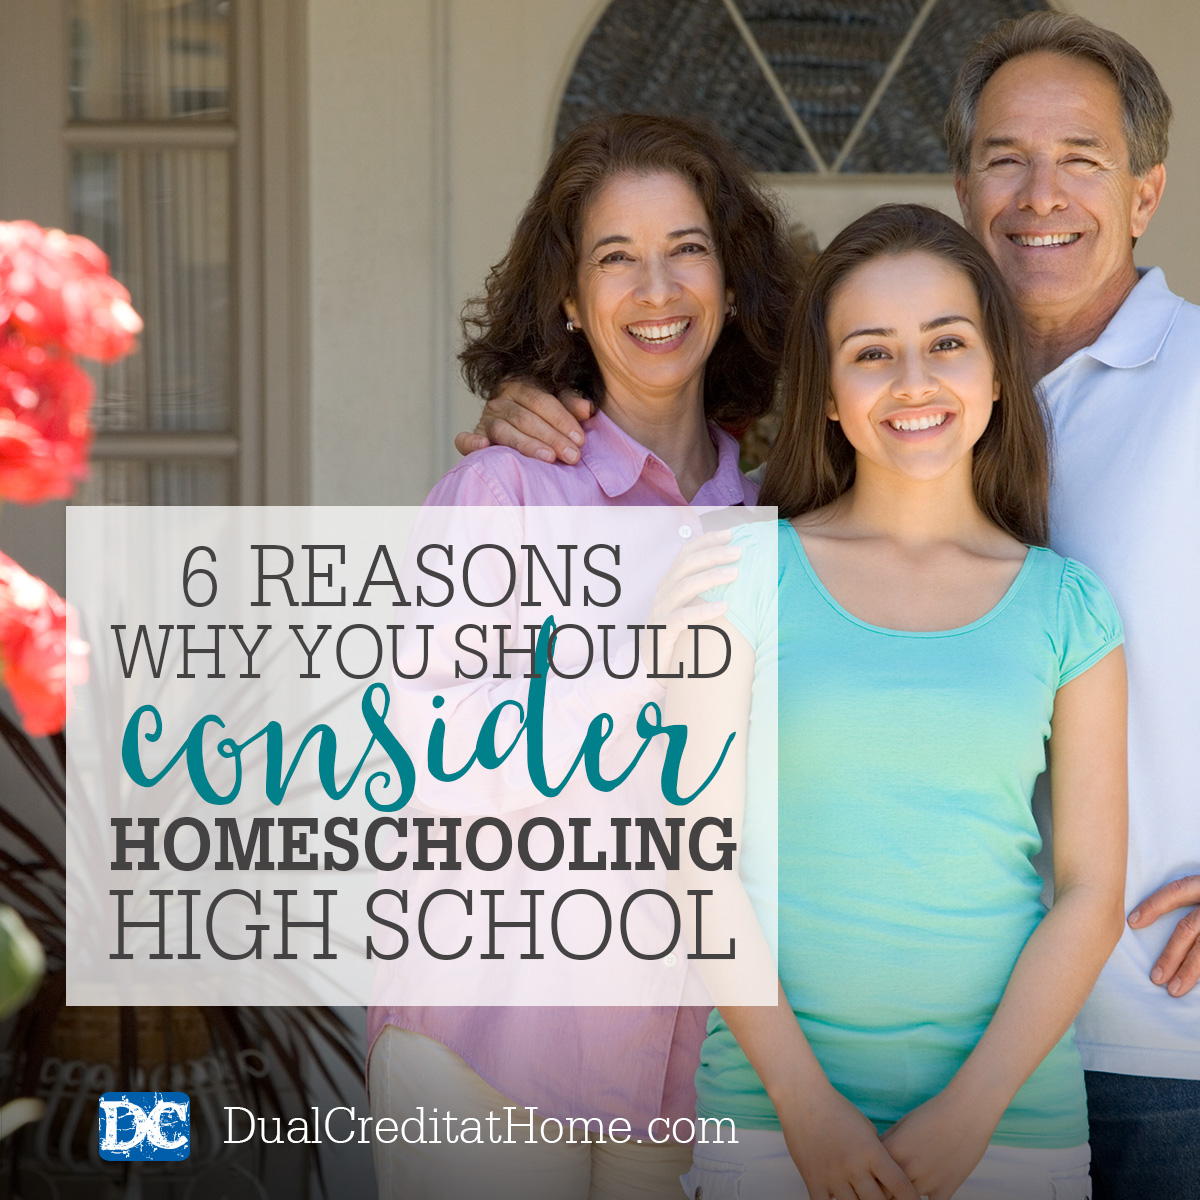 6 Reasons Why You Should Consider Homeschooling High School